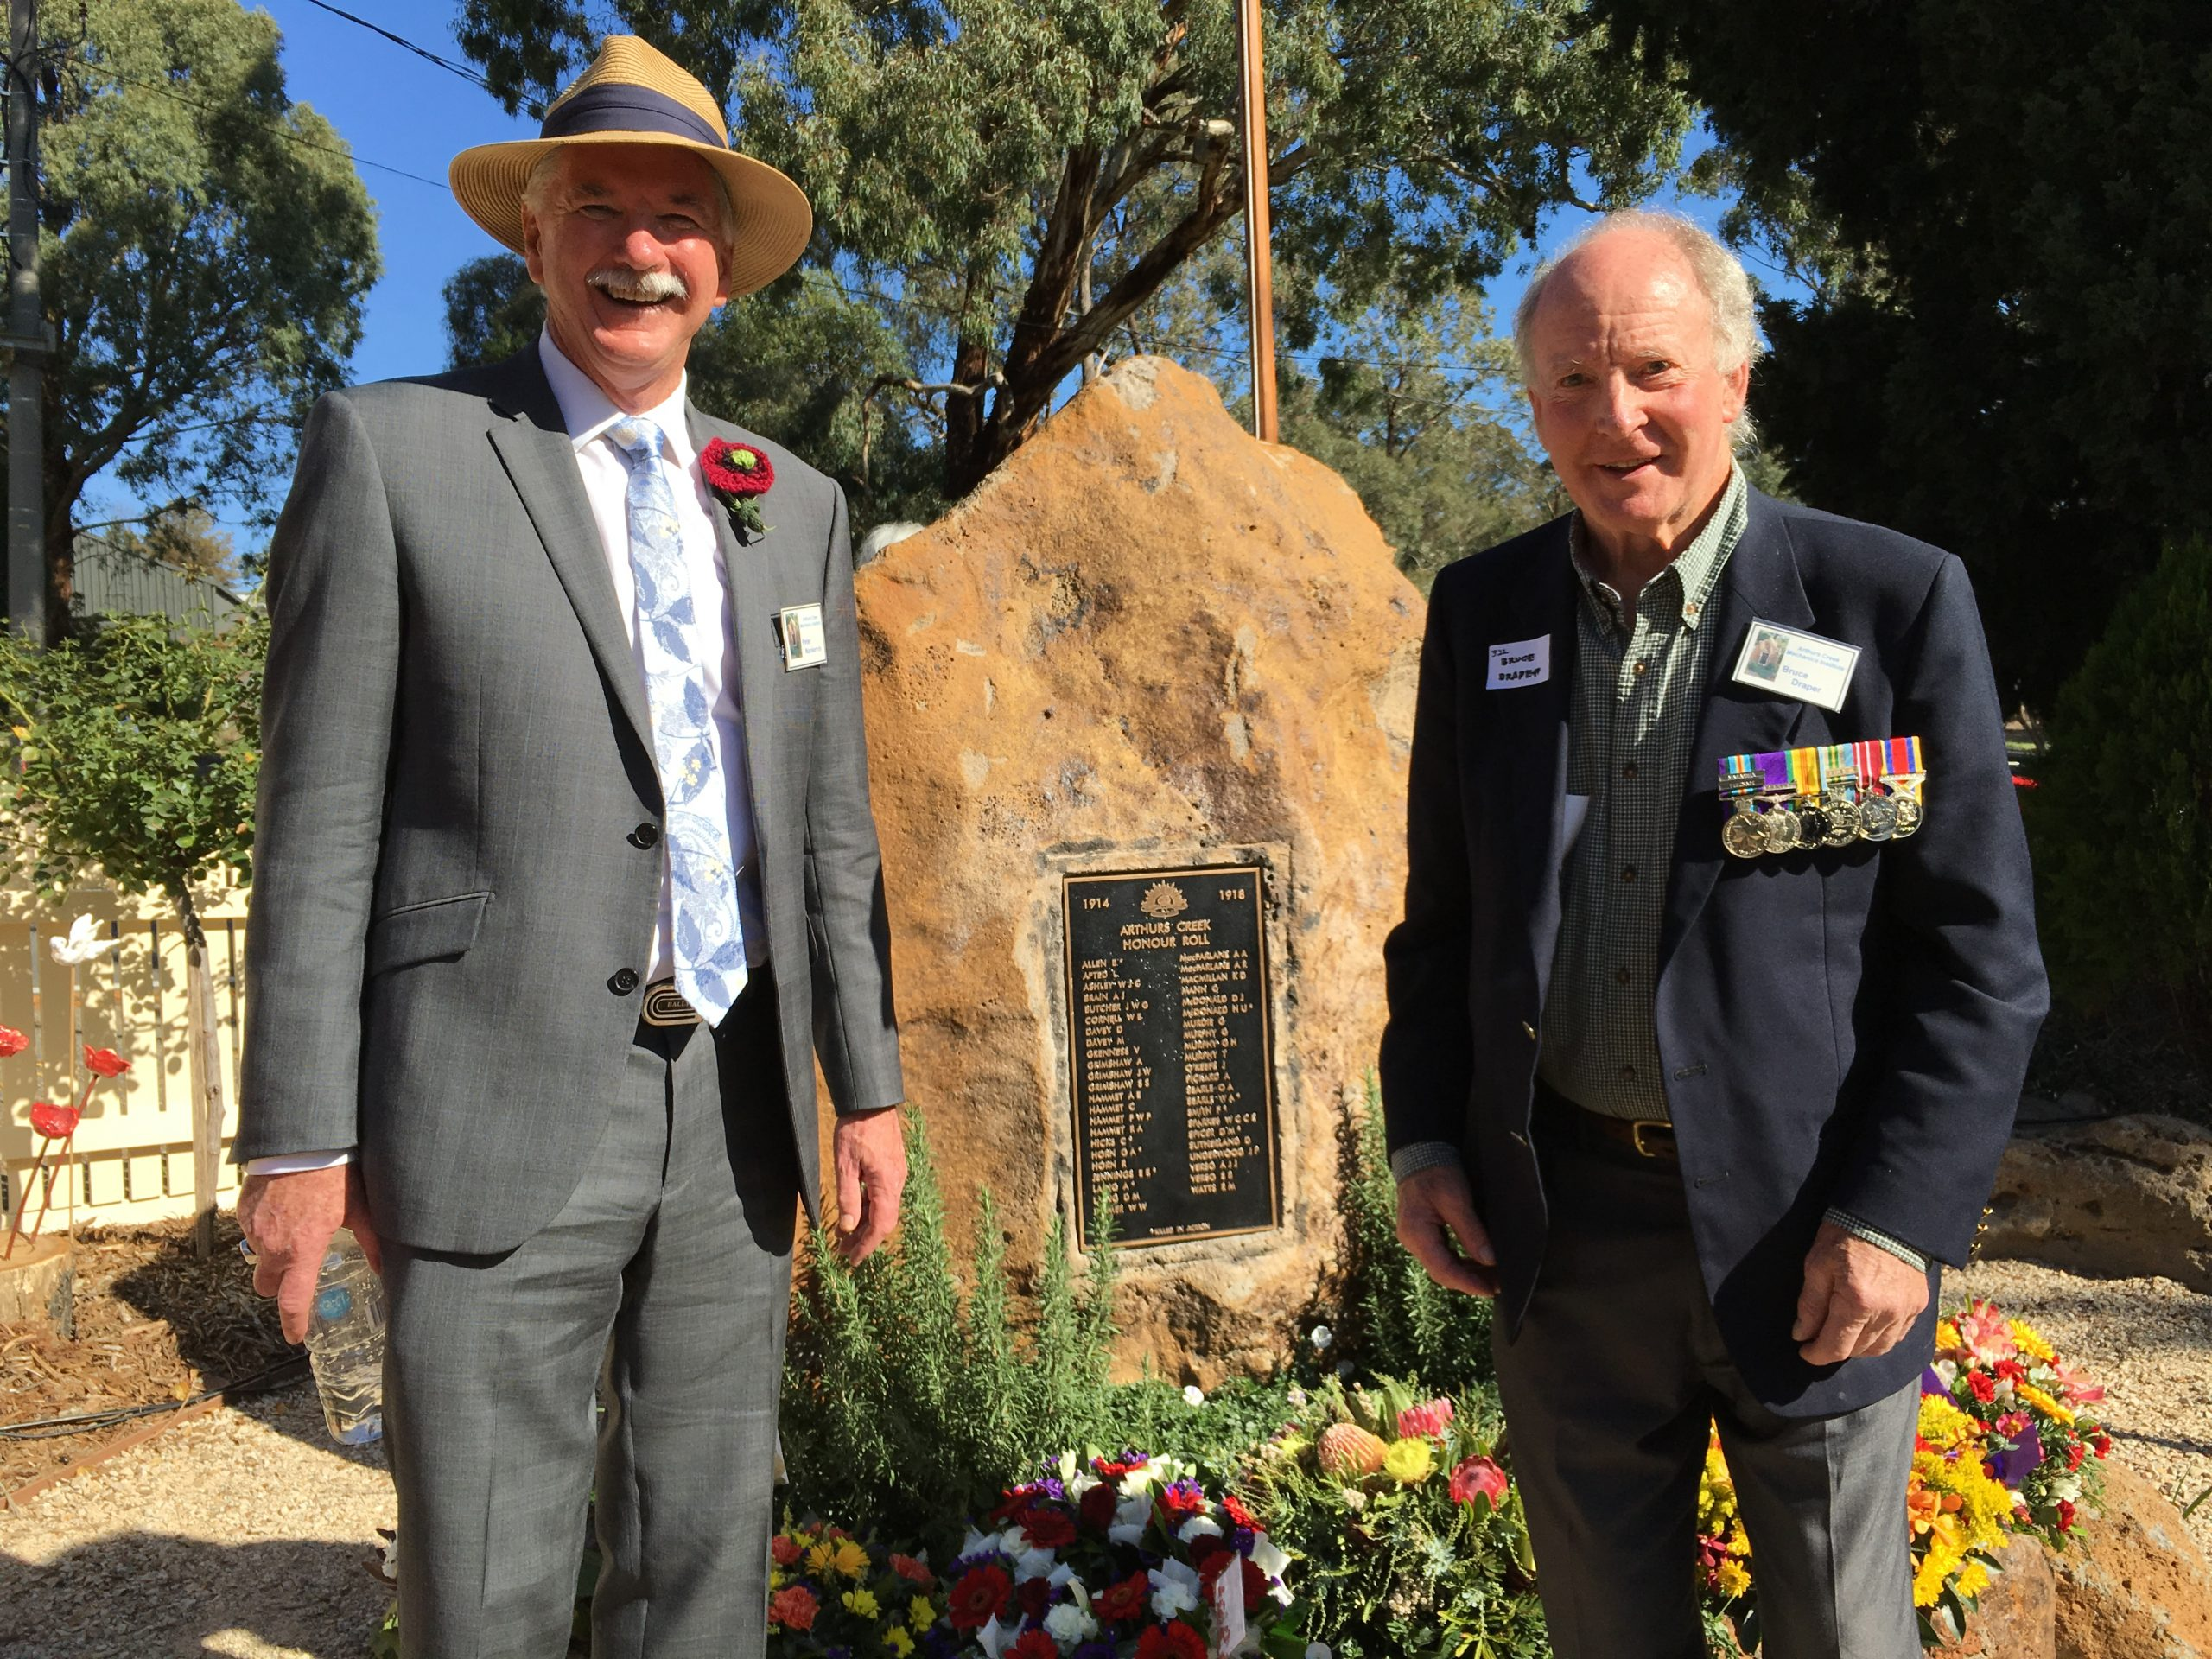 Peter Nankervis and Bruce G. Draper at the Arthurs Creek Mechanics Institute's WW1 Honour Roll and Commemorative Garden Opening, Sunday 17th April 2016